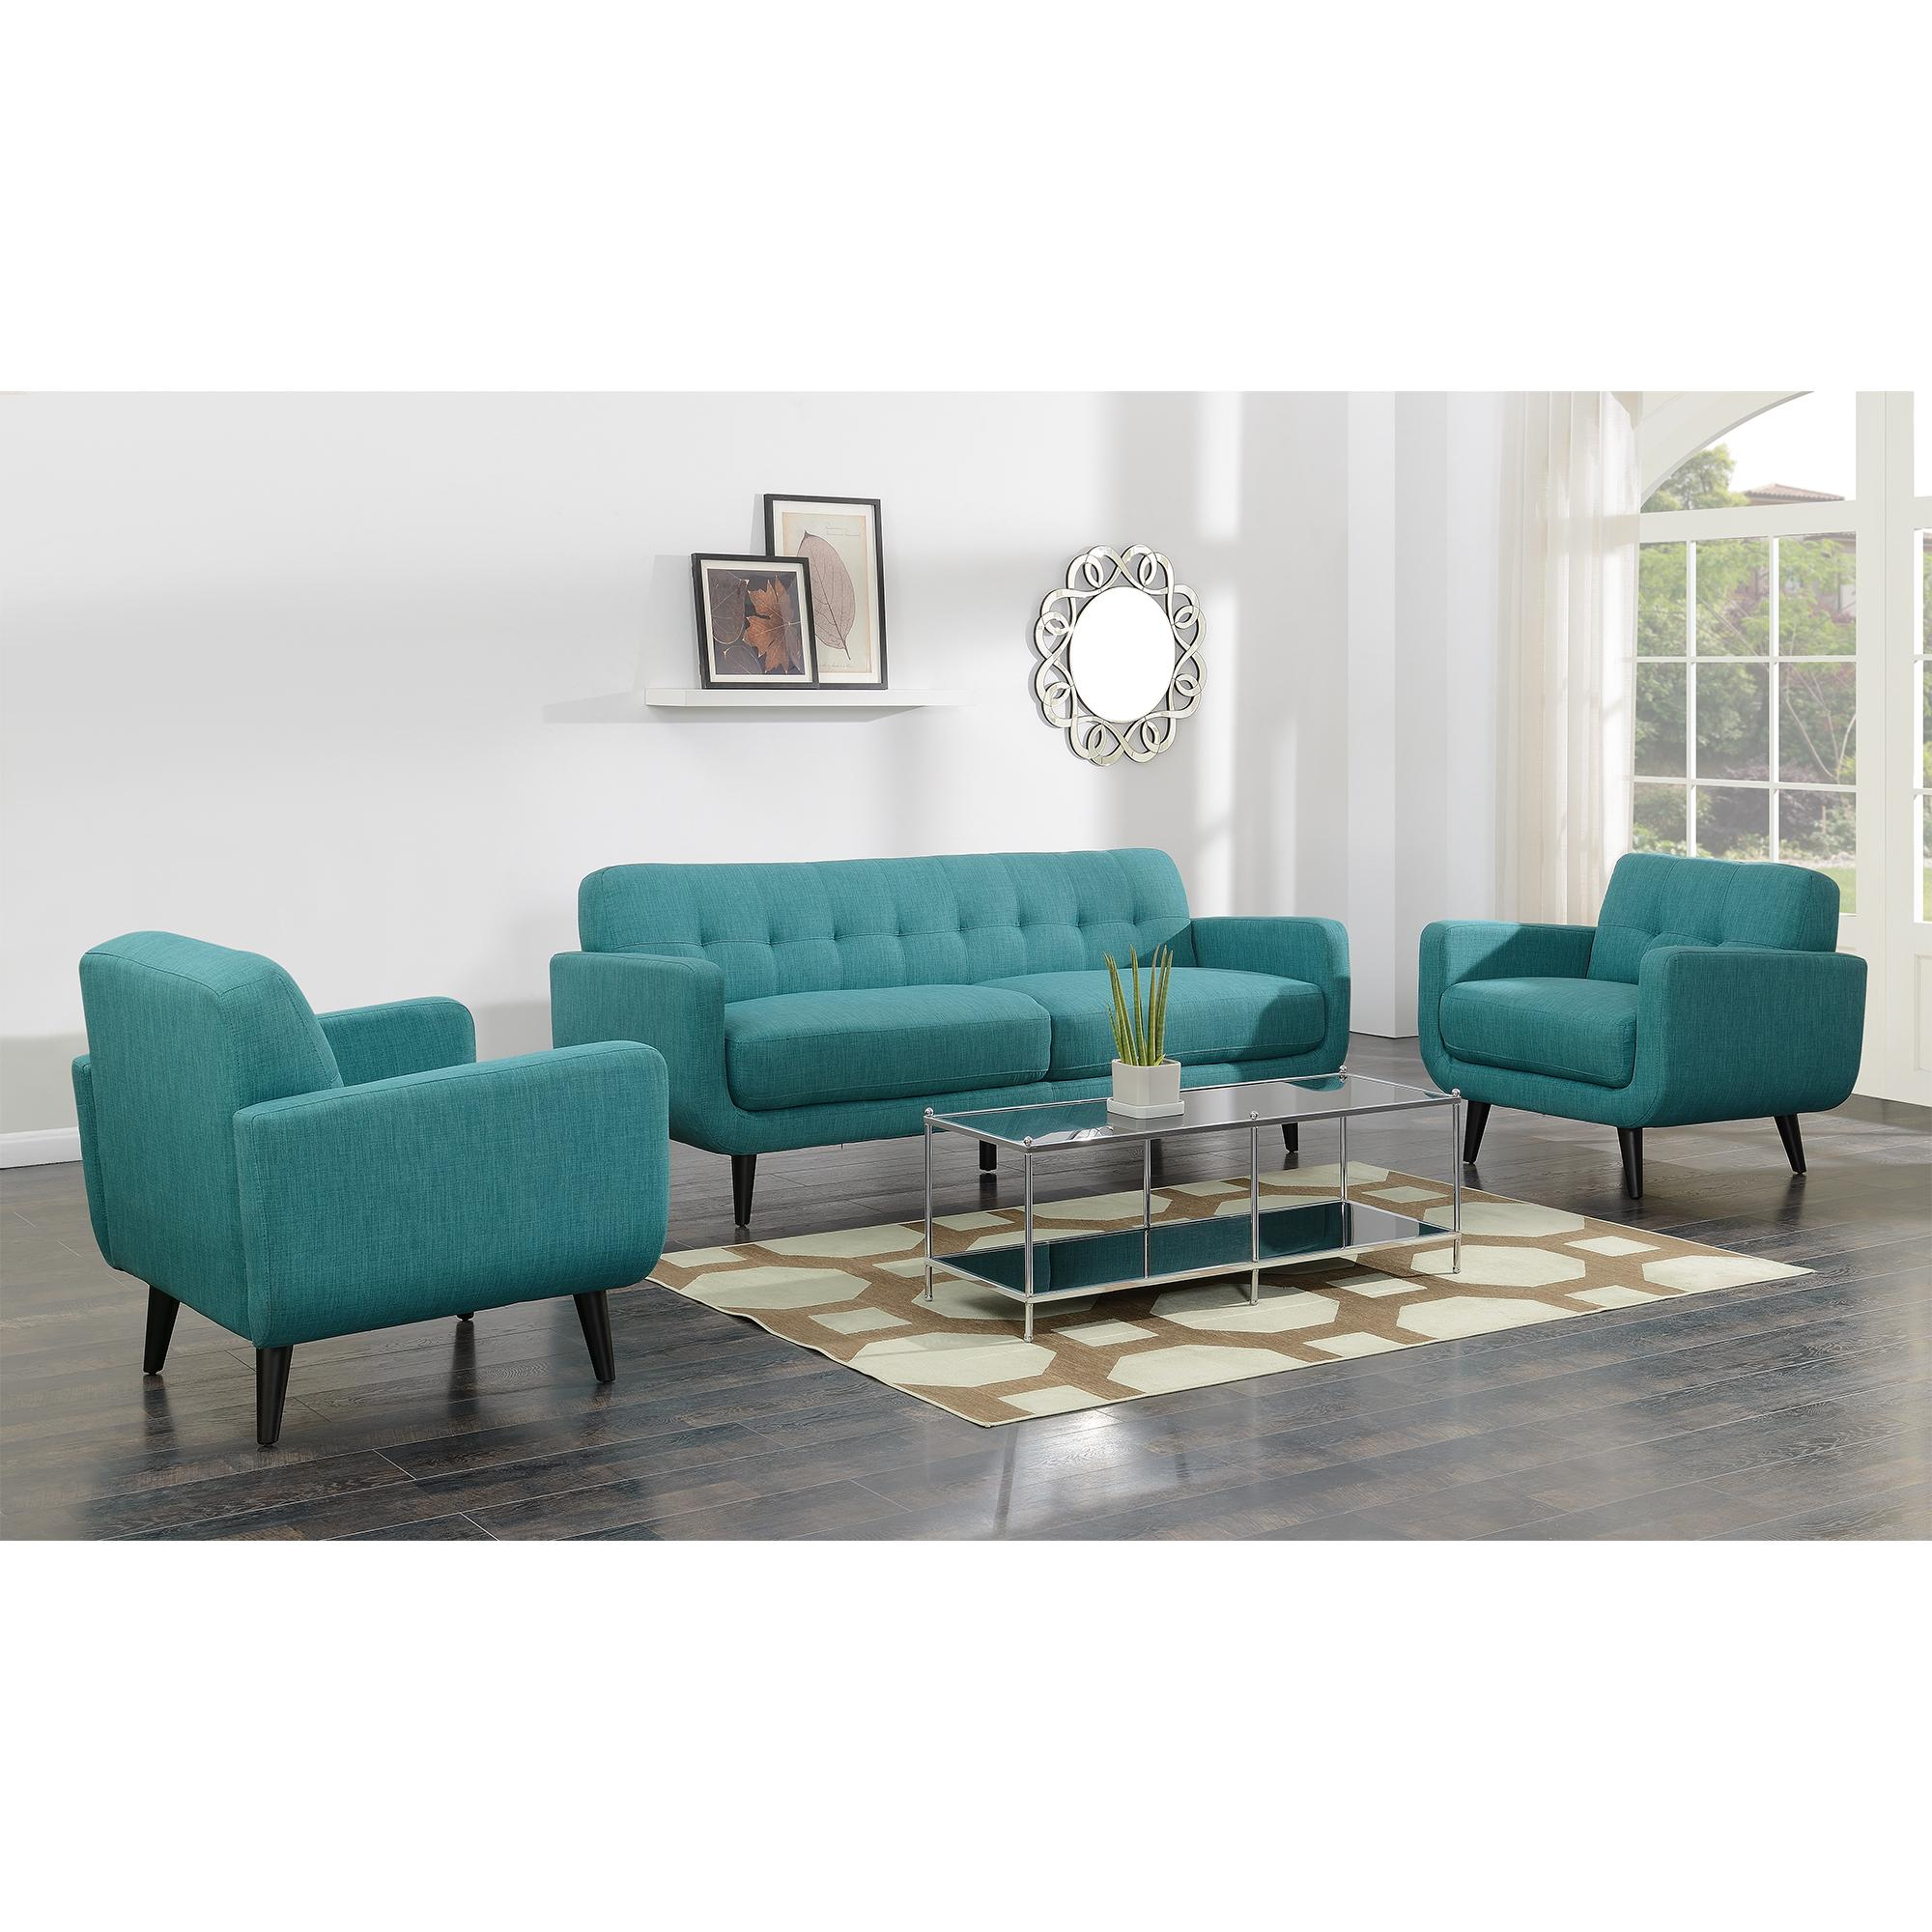 Picket House Hailey Teal Fabric Sofa And Chair Set The Classy Home